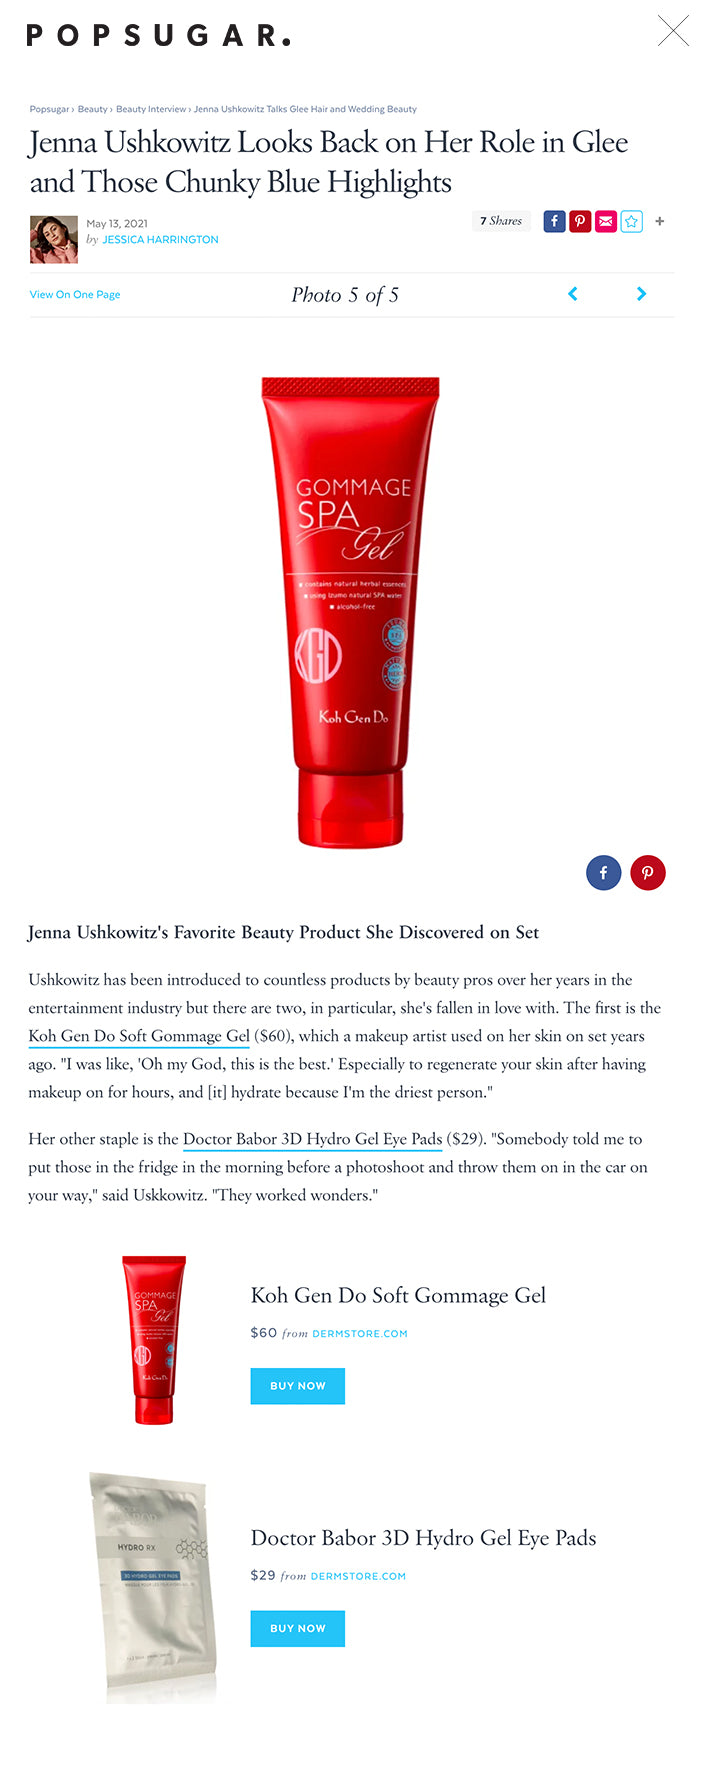 """Jenna Ushkowitz Looks Back on Her Role in Glee and Those Chunky Blue Highlights  May 13, 2021 by JESSICA HARRINGTON 7 Shares      View On One PagePhoto 5 of 5     Jenna Ushkowitz's Favorite Beauty Product She Discovered on Set ← USE ARROW KEYS → Image Source: dermstore.com Jenna Ushkowitz's Favorite Beauty Product She Discovered on Set Ushkowitz has been introduced to countless products by beauty pros over her years in the entertainment industry but there are two, in particular, she's fallen in love with. The first is the Koh Gen Do Soft Gommage Gel ($60), which a makeup artist used on her skin on set years ago. """"I was like, 'Oh my God, this is the best.' Especially to regenerate your skin after having makeup on for hours, and [it] hydrate because I'm the driest person.""""  Her other staple is the Doctor Babor 3D Hydro Gel Eye Pads ($29). """"Somebody told me to put those in the fridge in the morning before a photoshoot and throw them on in the car on your way,"""" said Uskkowitz. """"They worked wonders.""""  Jenna Ushkowitz's Favorite Beauty Product She Discovered on Set Koh Gen Do Soft Gommage Gel $60 from DERMSTORE.COM BUY NOW Doctor Babor 3D Hydro Gel Eye Pads Doctor Babor 3D Hydro Gel Eye Pads $29 from DERMSTORE.COM BUY NOW"""